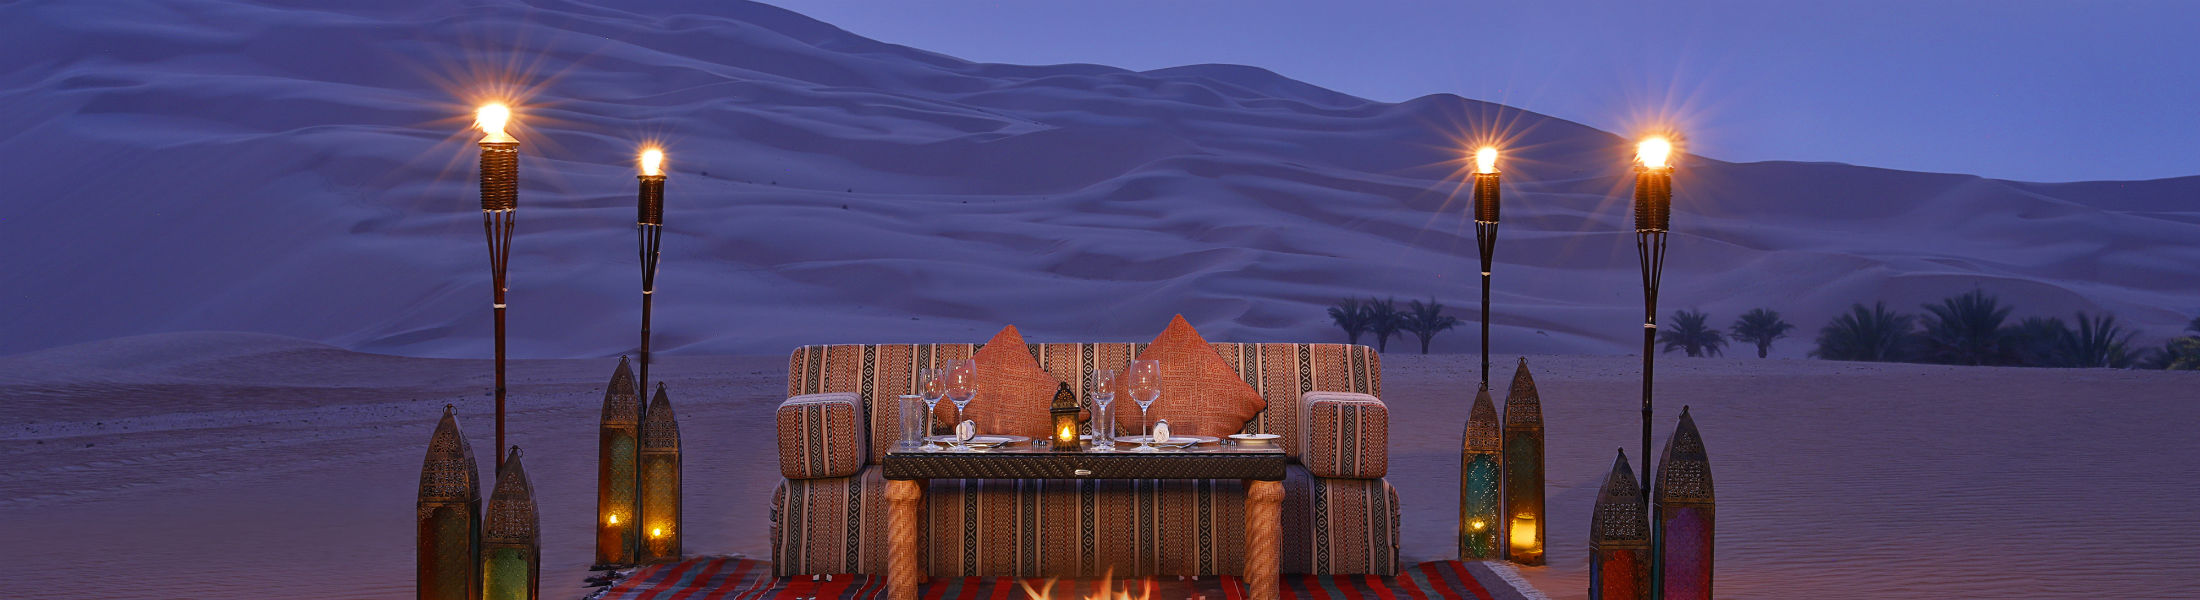 Dining by Design Arabian Cushions